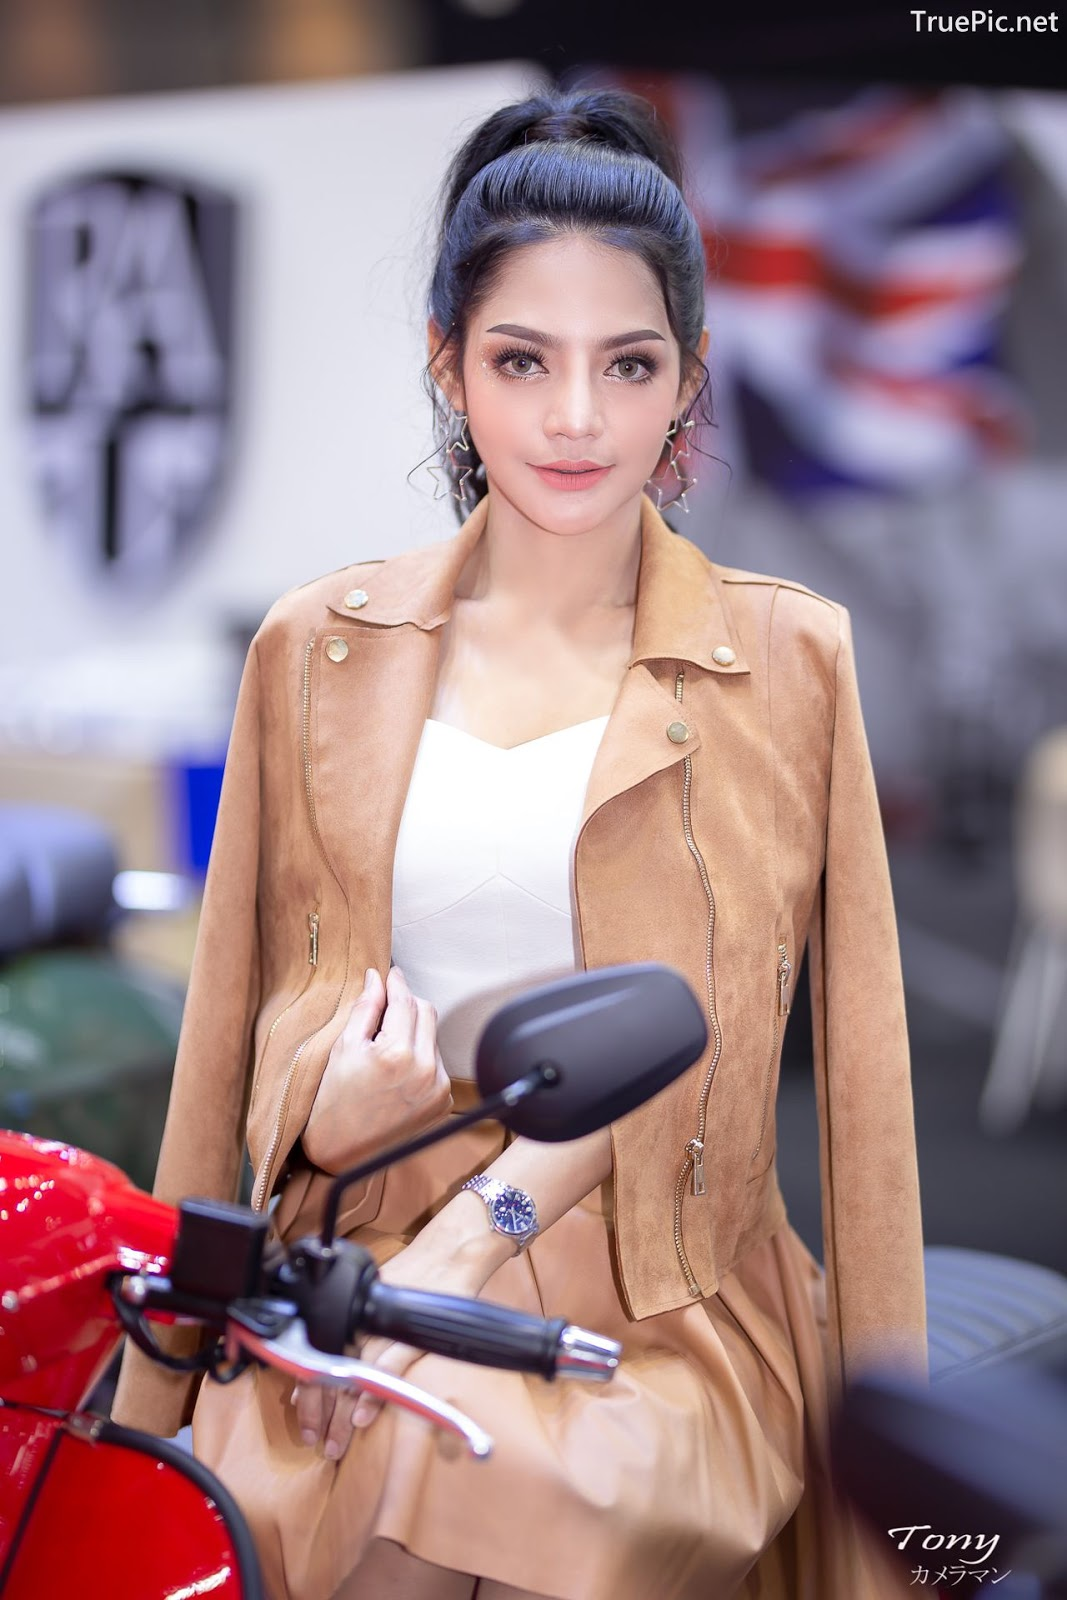 Image-Thailand-Hot-Model-Thai-Racing-Girl-At-Motor-Show-2019-TruePic.net- Picture-5